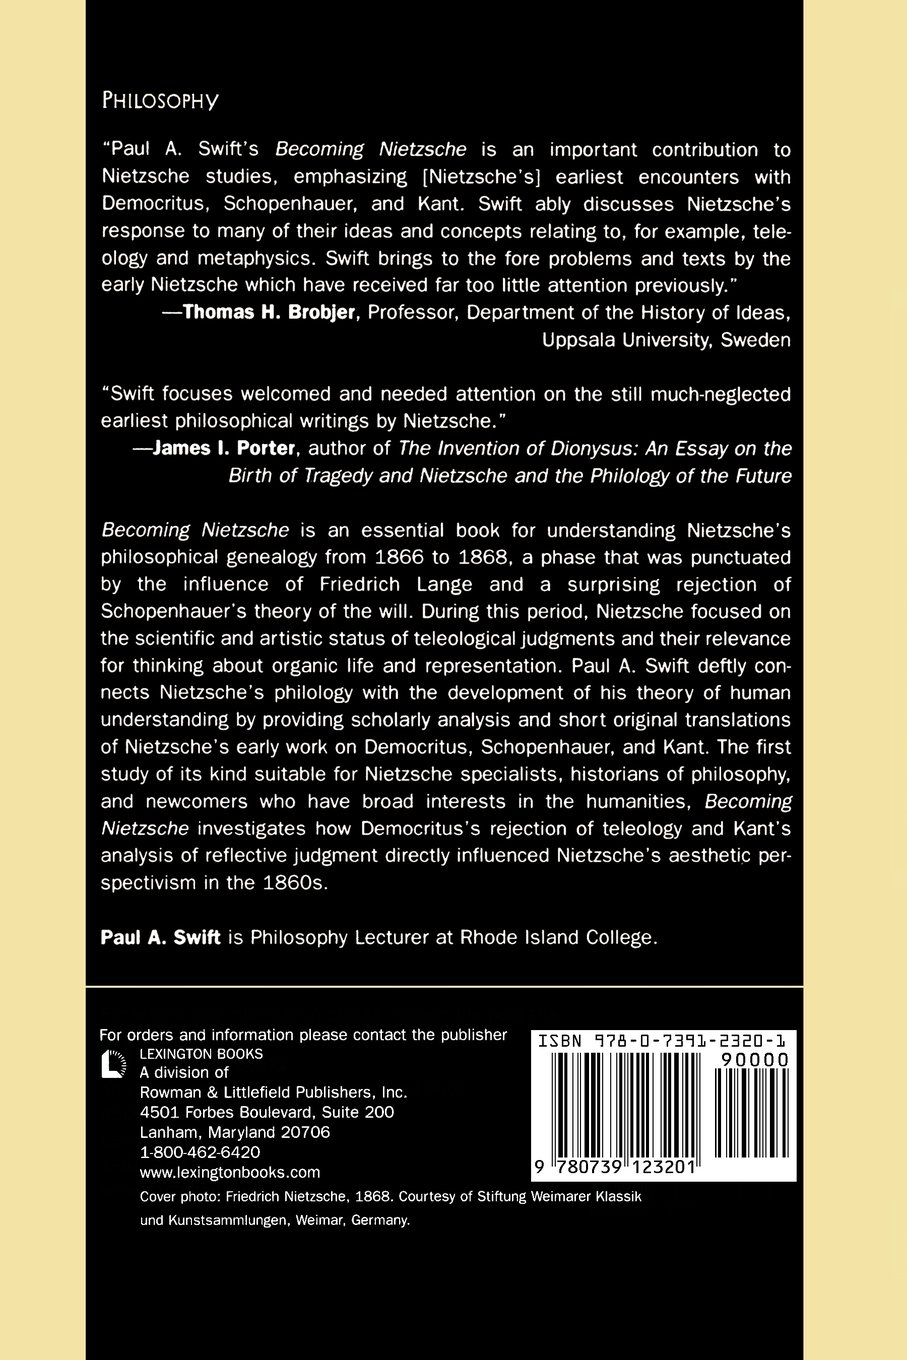 becoming nietzsche early reflections on democritus schopenhauer becoming nietzsche early reflections on democritus schopenhauer and kant paul a swift 9780739123201 com books